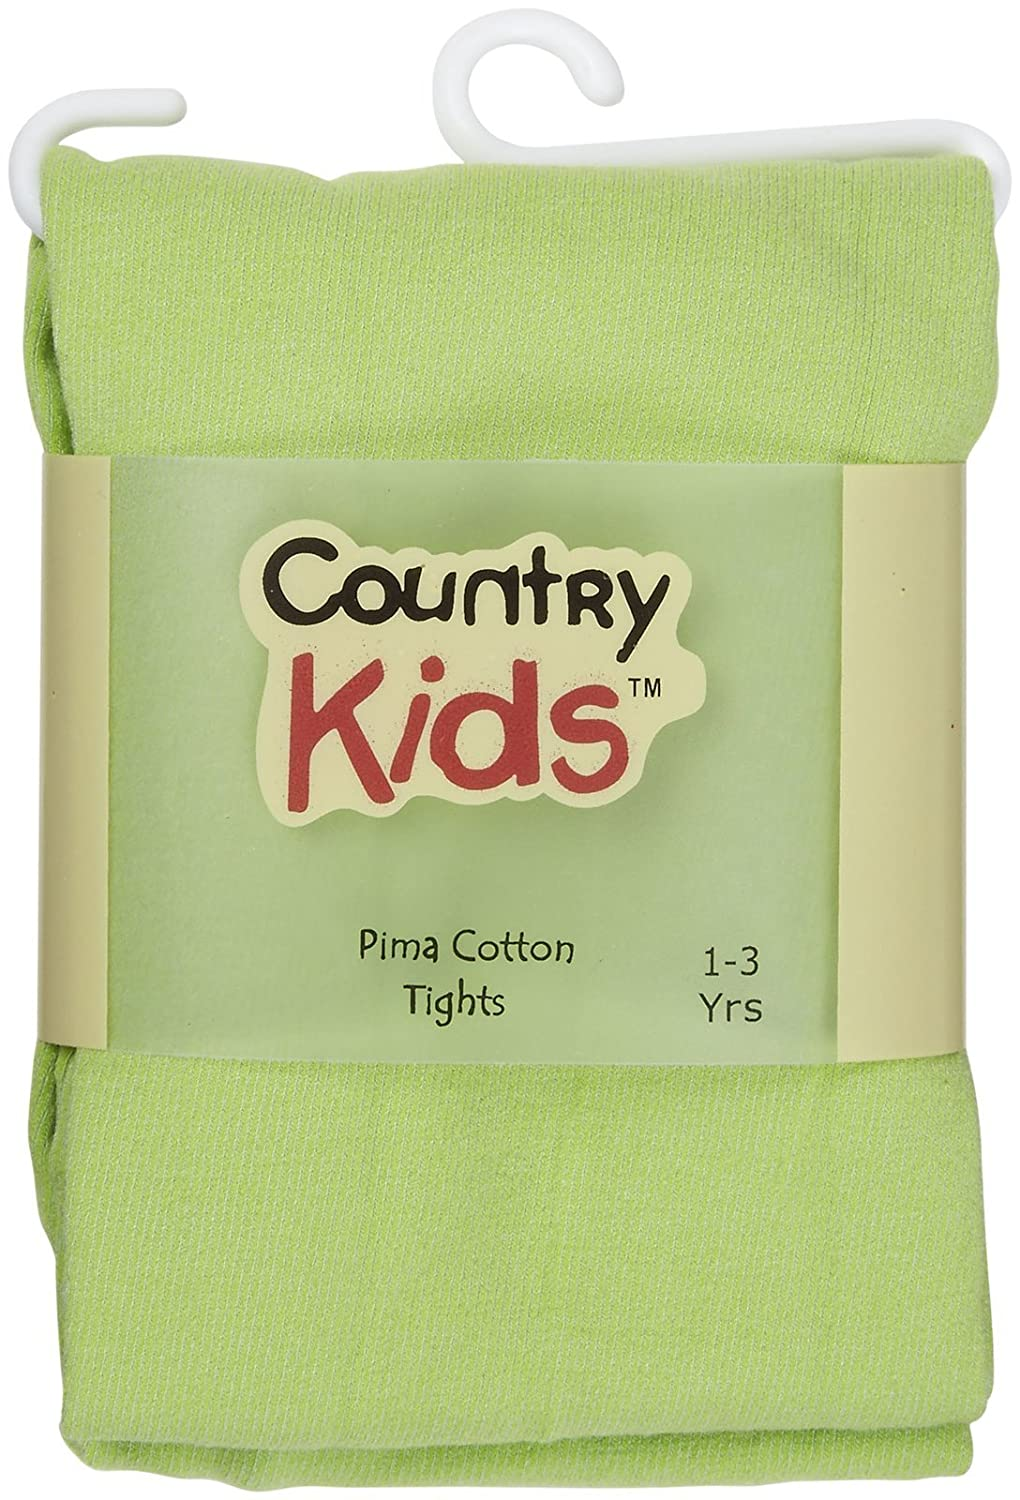 Pack of 2 Country Kids Girls Stretchy Pima Cotton Footed School Dance Pantyhose Tights